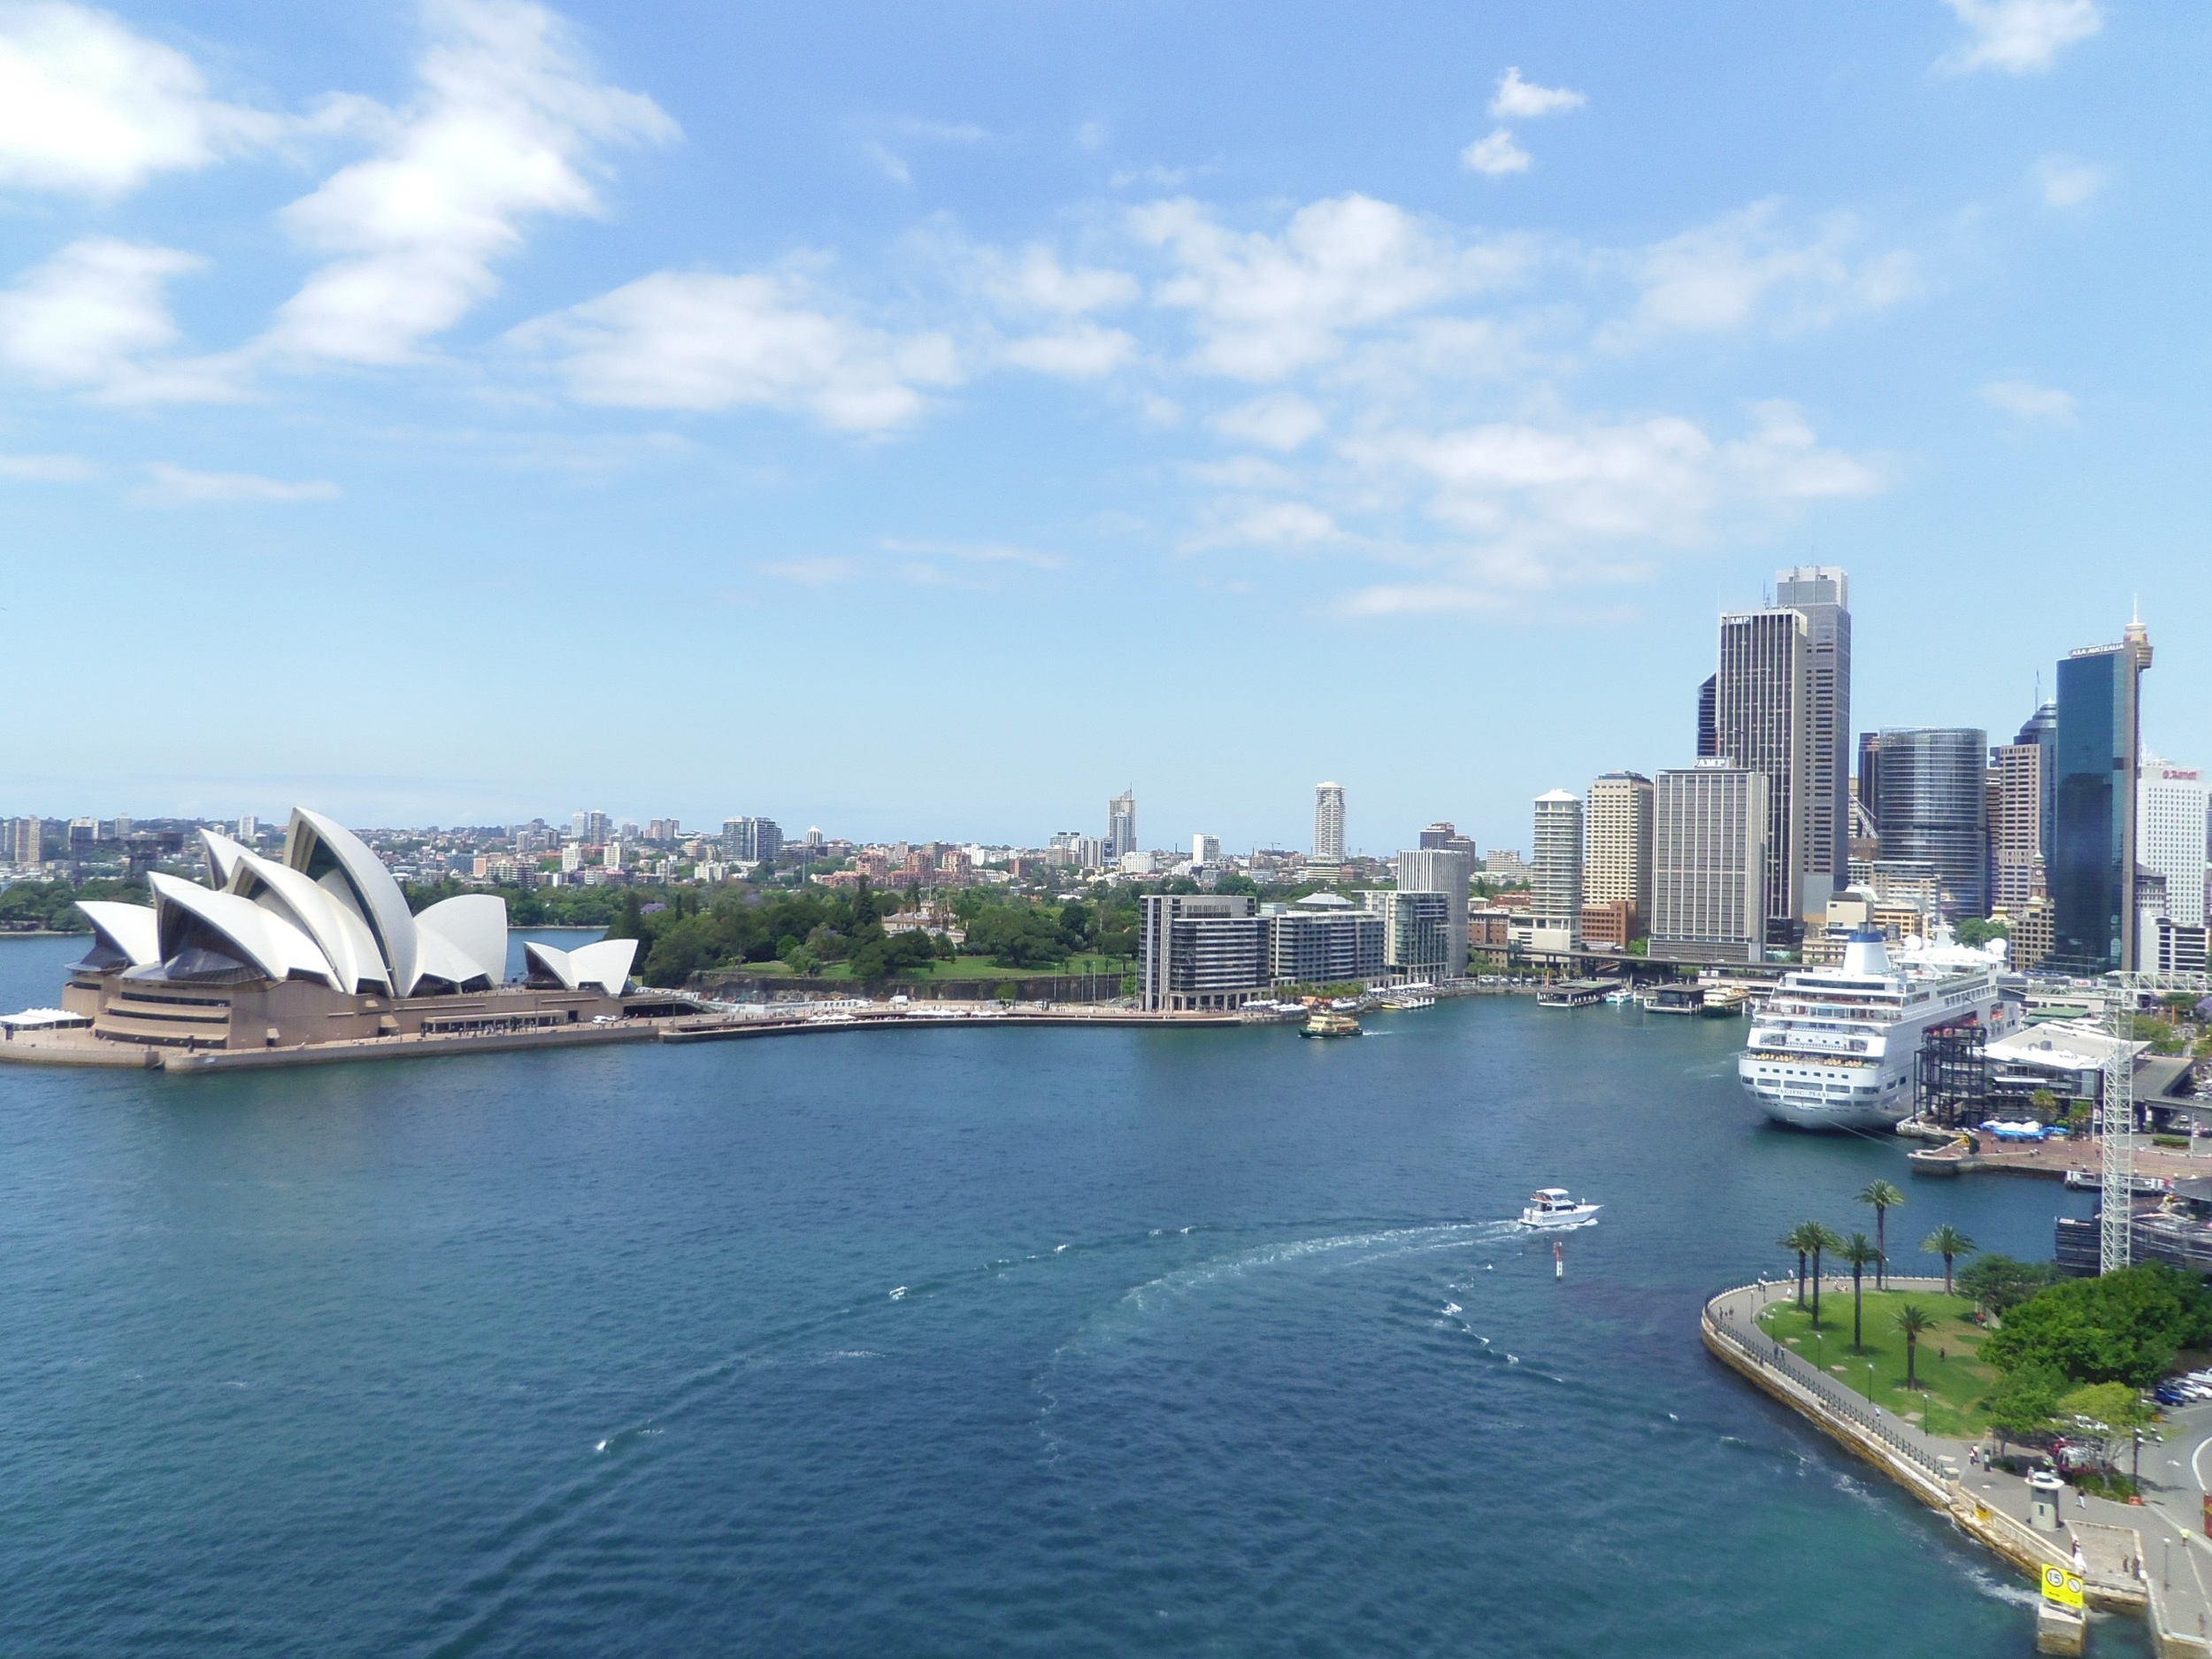 A view of downtown Sydney from The Sydney Bridge